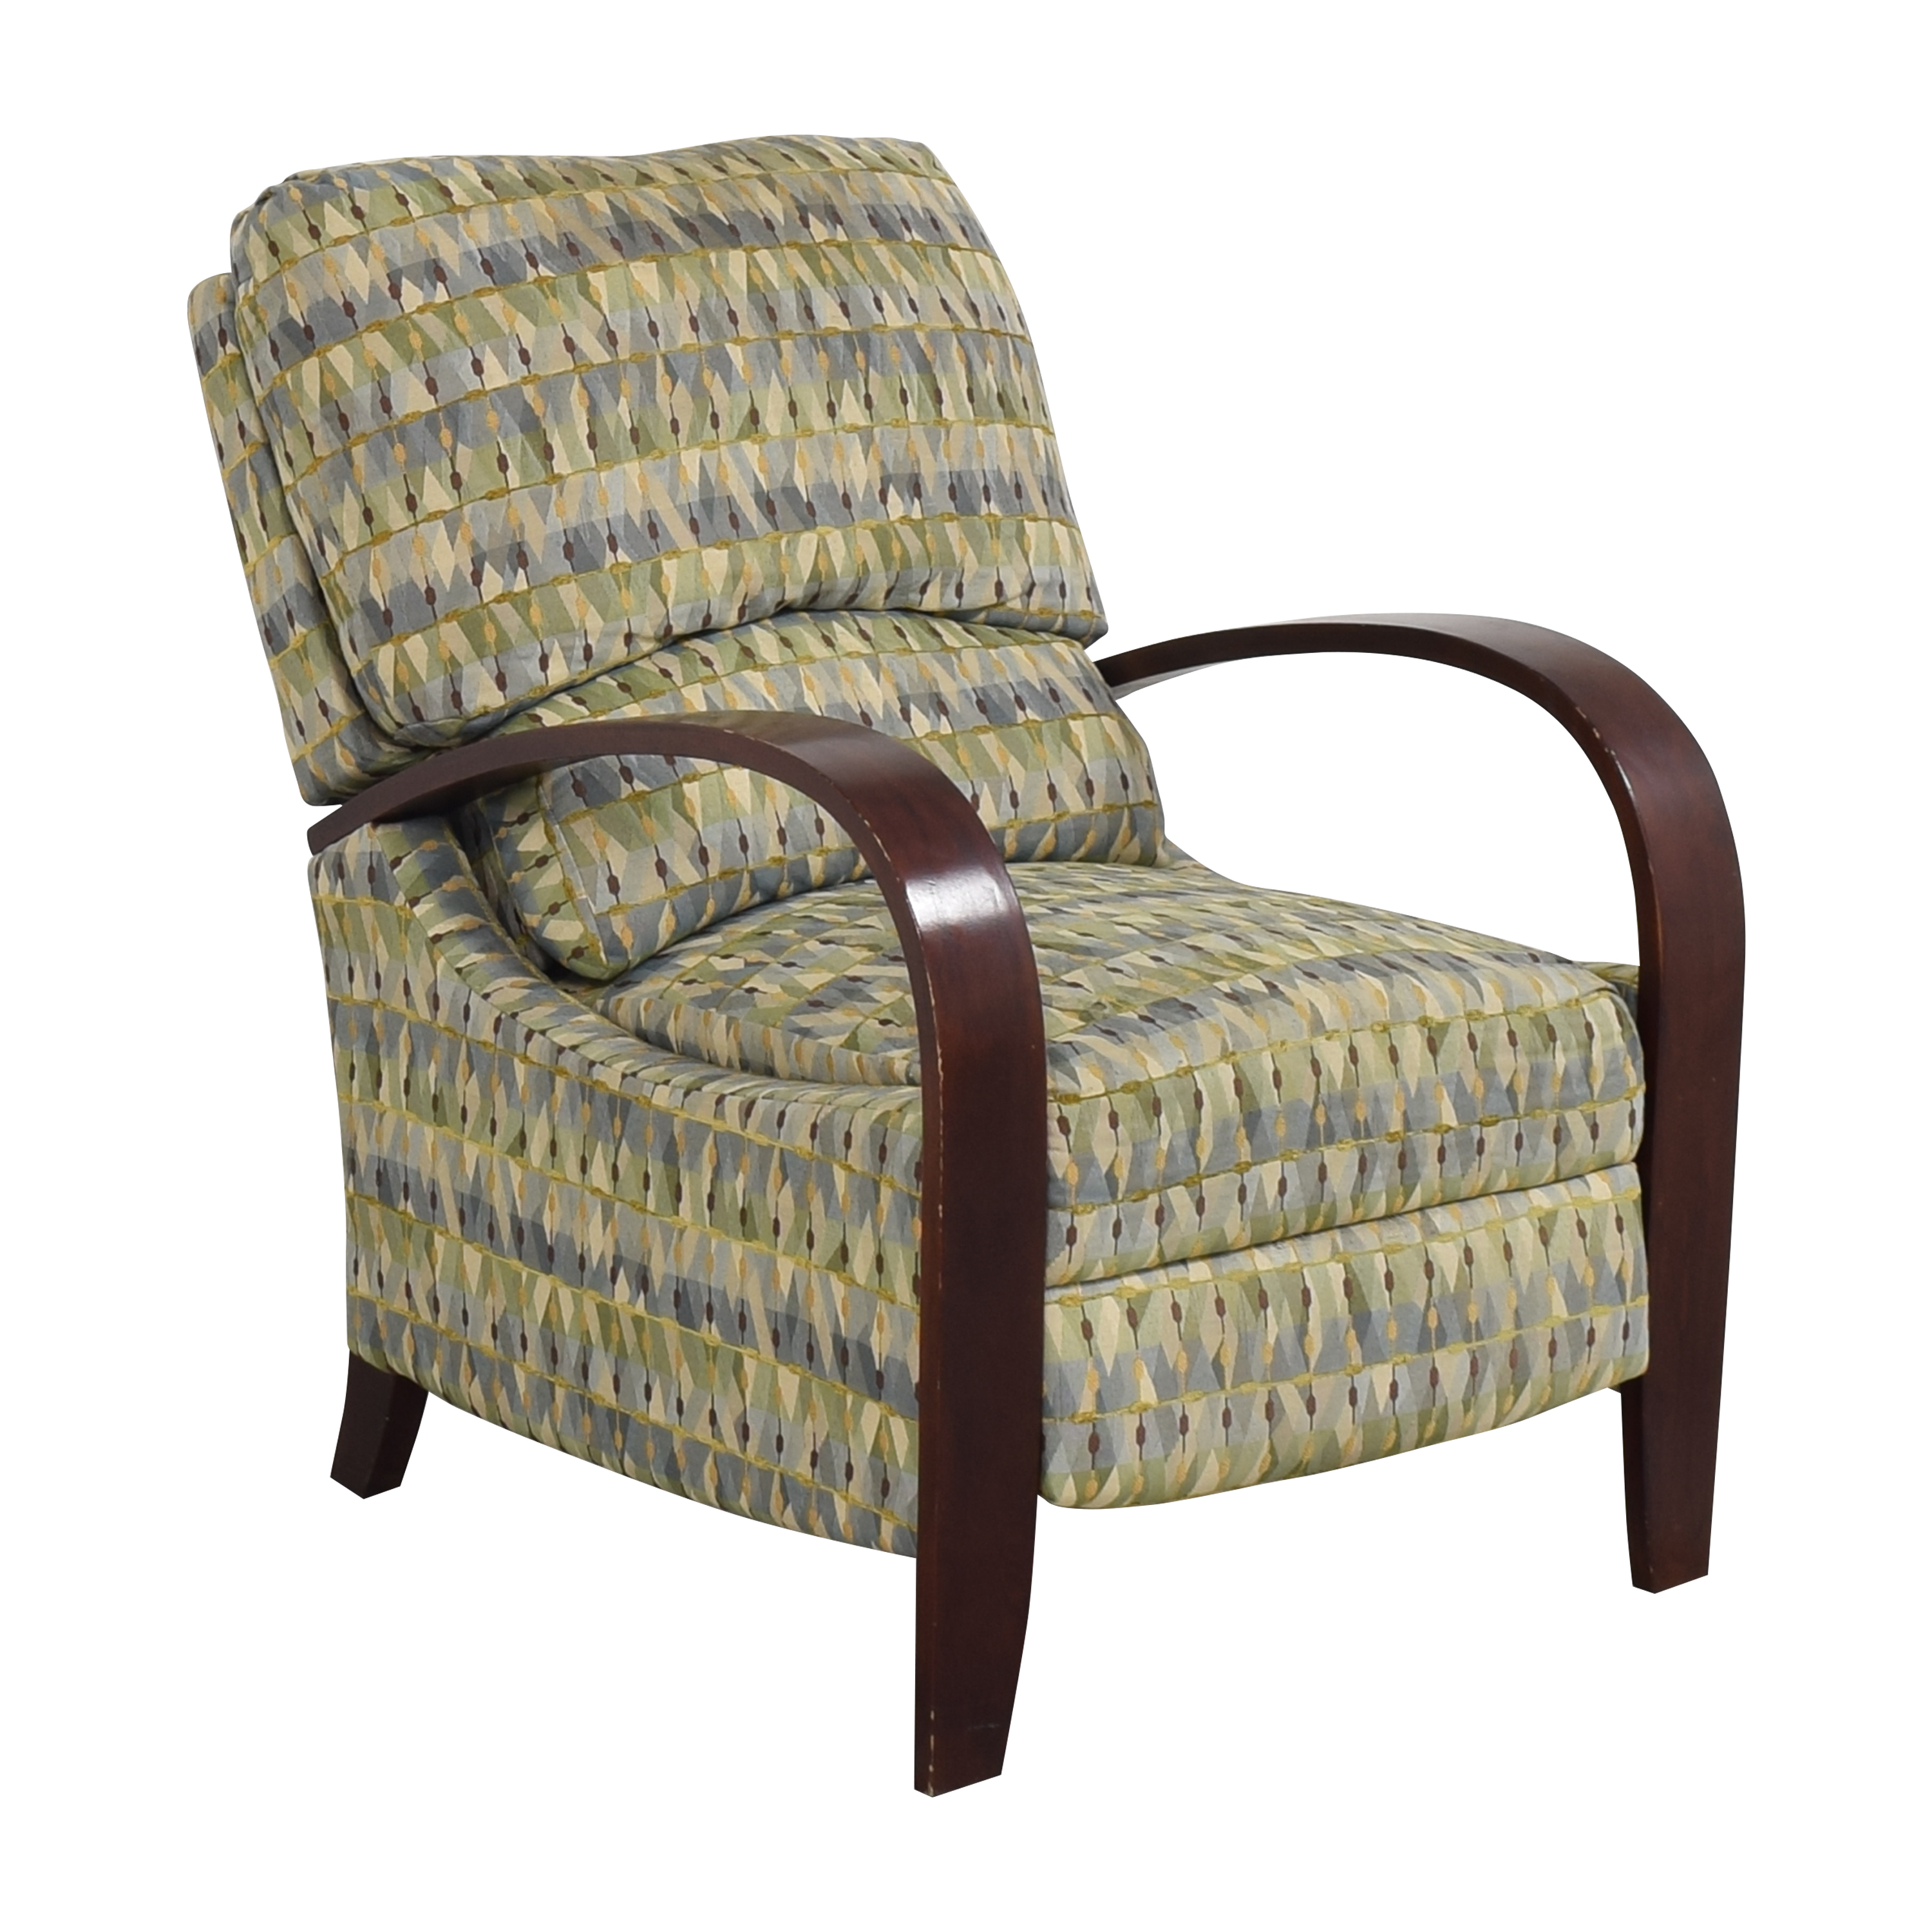 Raymour & Flanigan Raymour & Flanigan Patterned Recliner